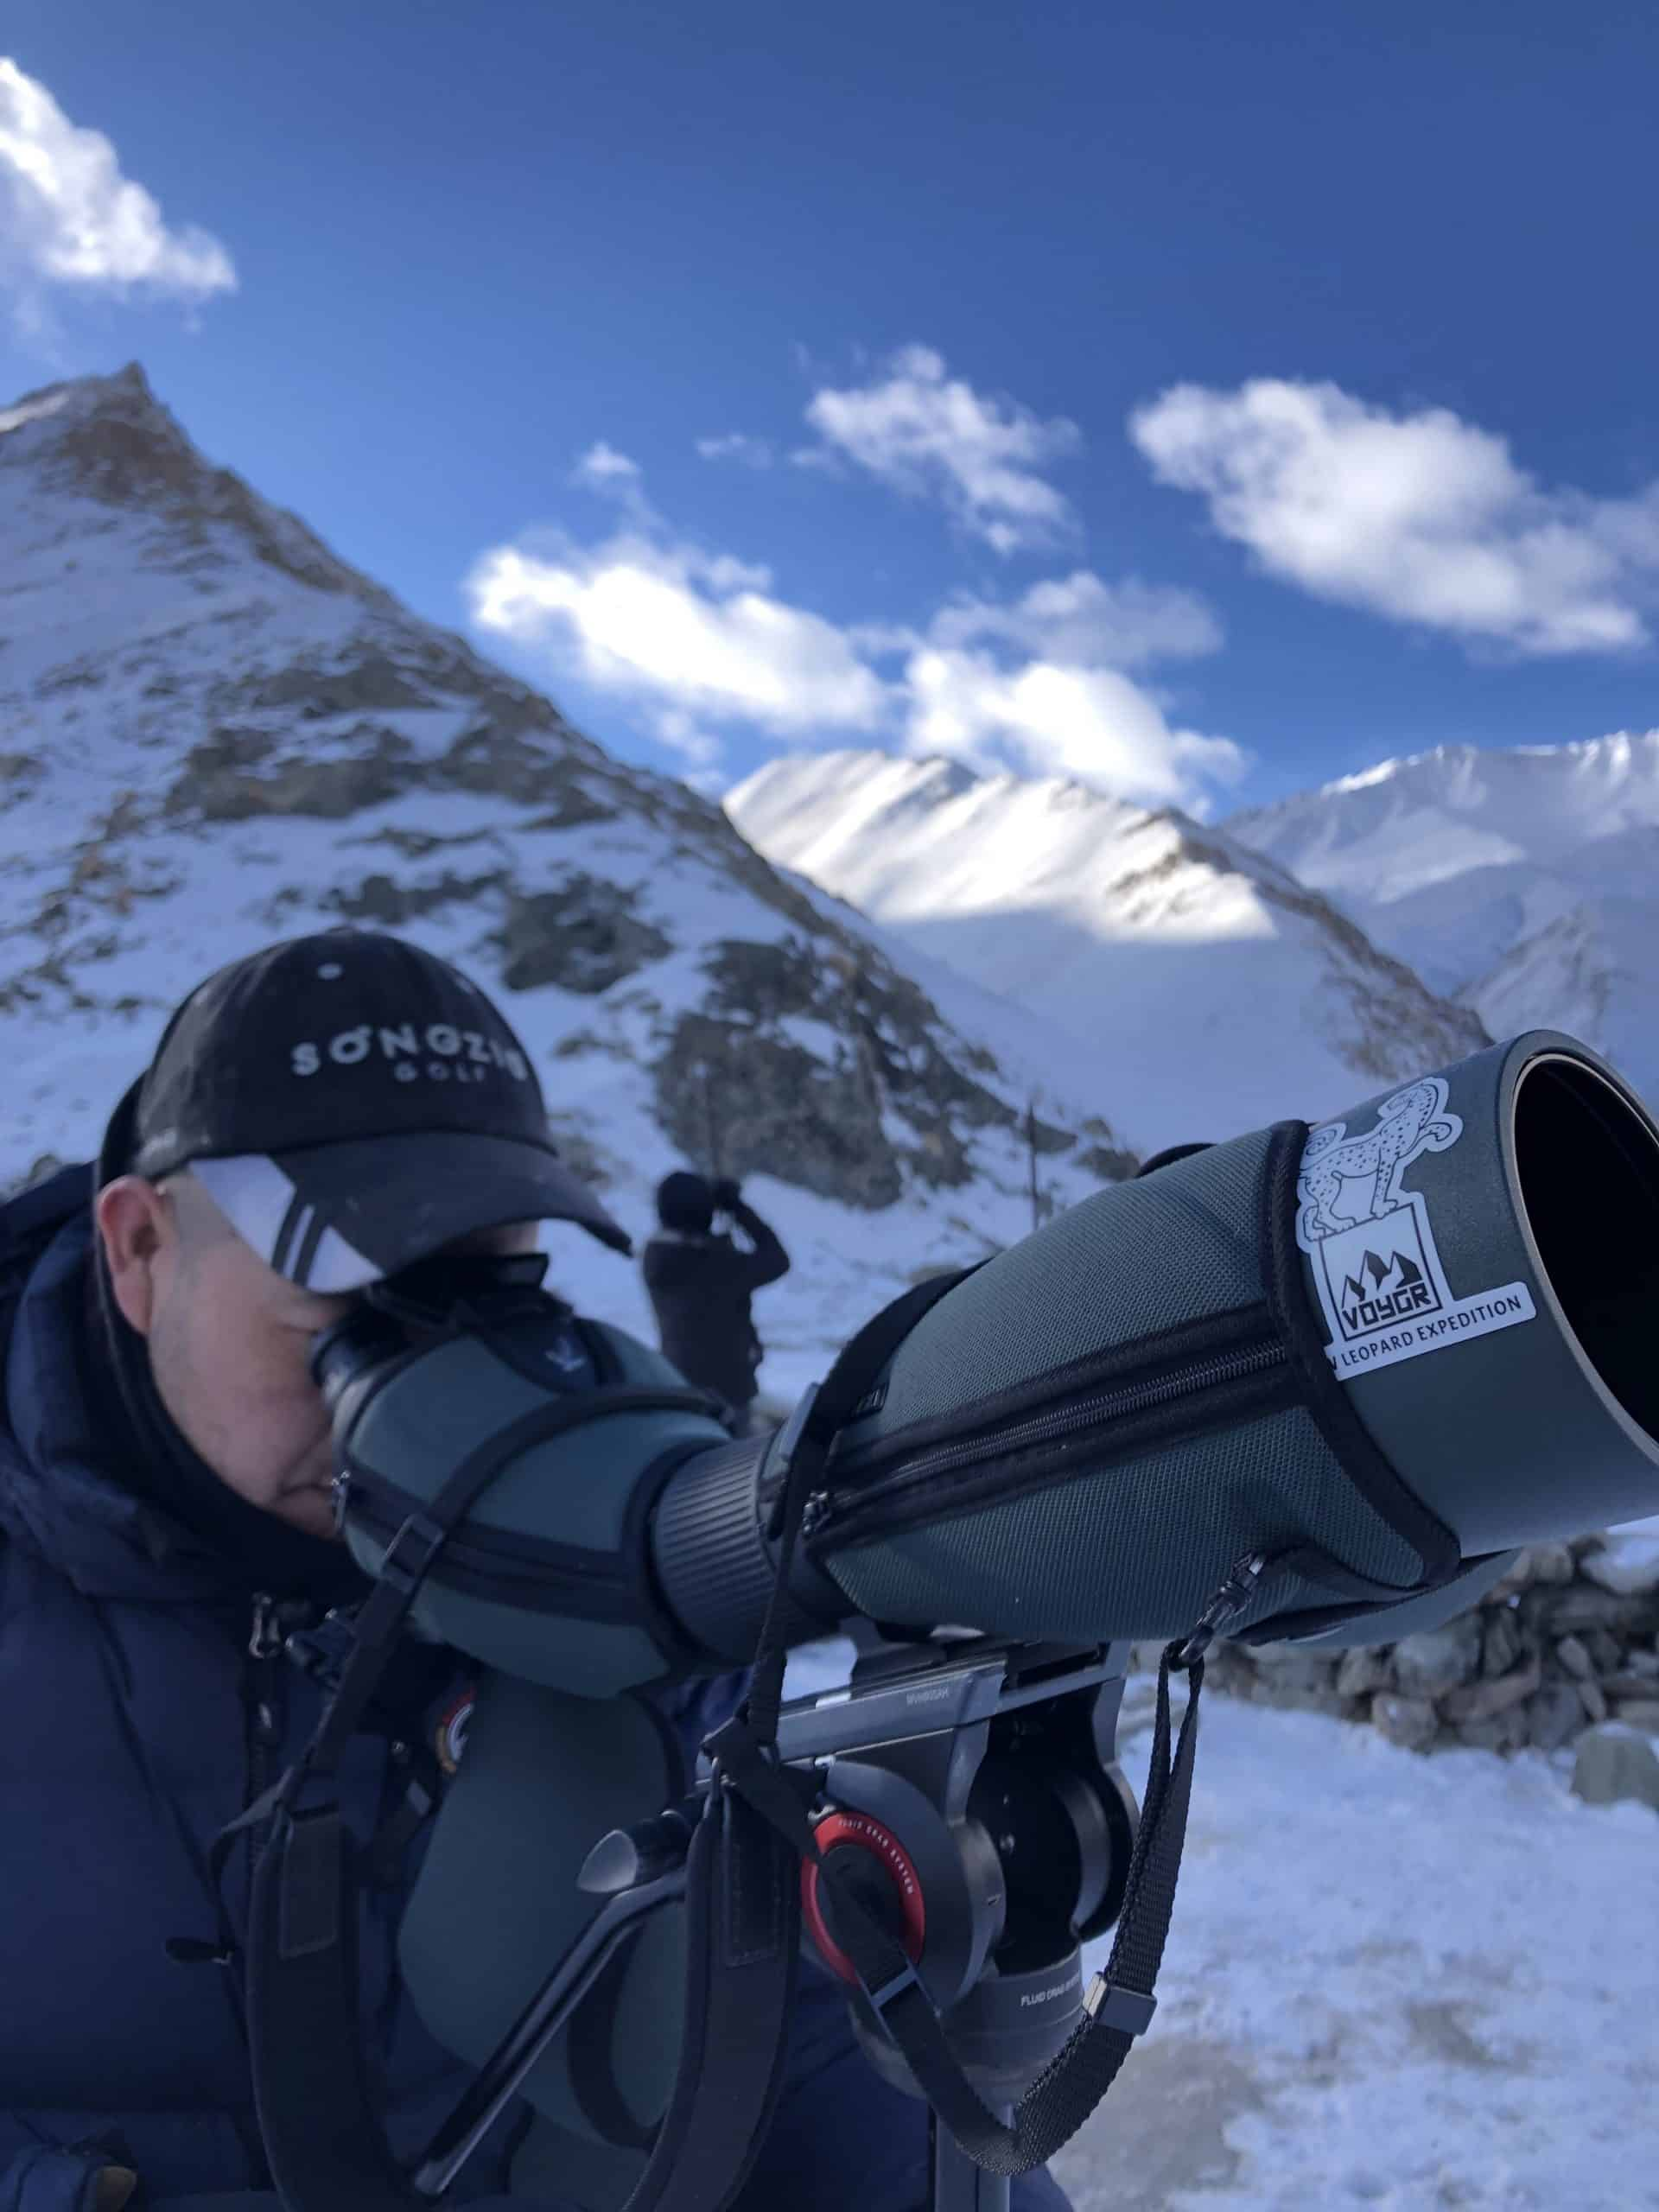 Specialists Are Always Scanning On Snow Leopard Tours